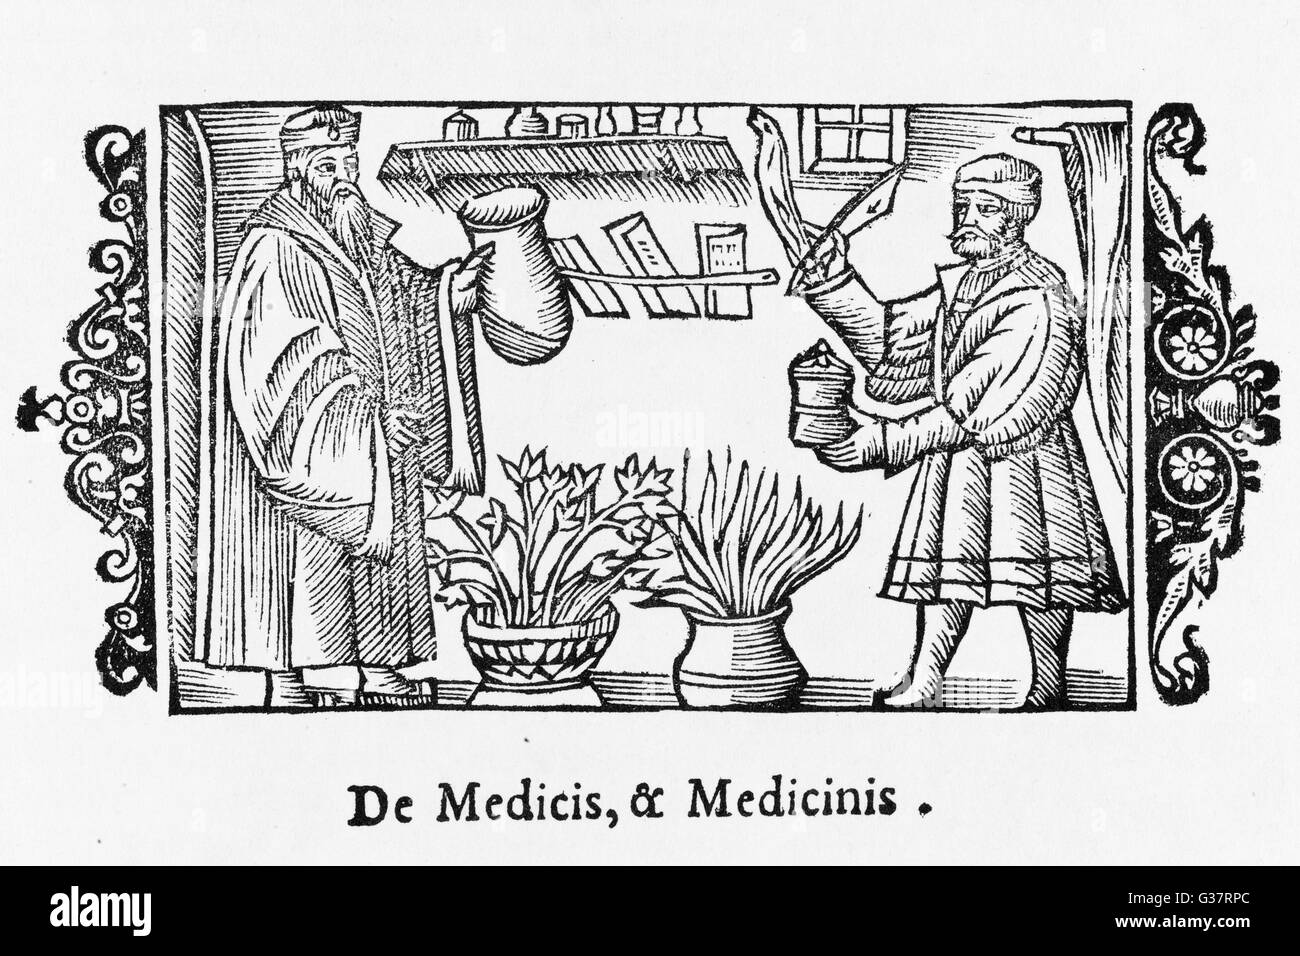 A DOCTOR AND AN APOTHECARY          Date: 1555 Stock Photo